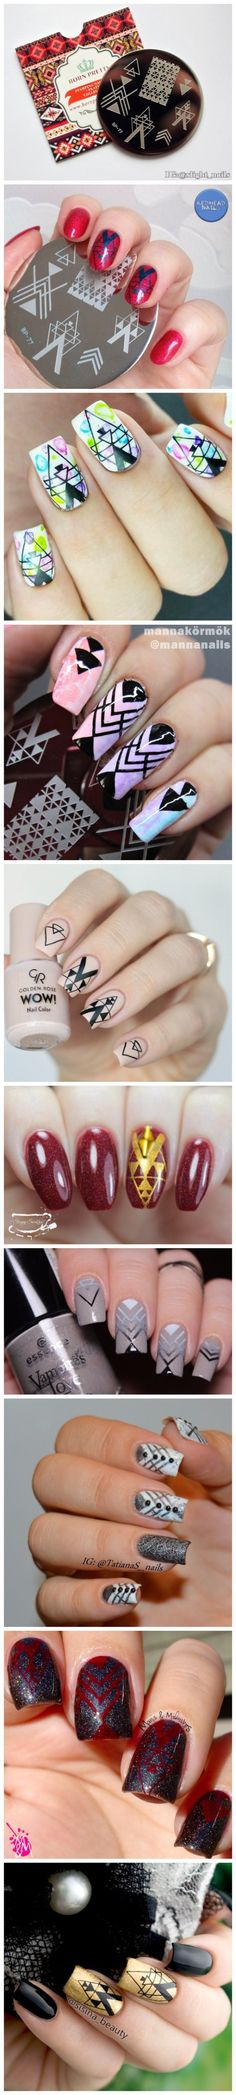 BORN PRETTY Negative Space Nail Art Stamping Stamp Template Image Plates Cool Triangle Nail Stamp Plate BP77-in Nail Art Templates from Health & Beauty on Aliexpress.com | Alibaba Group